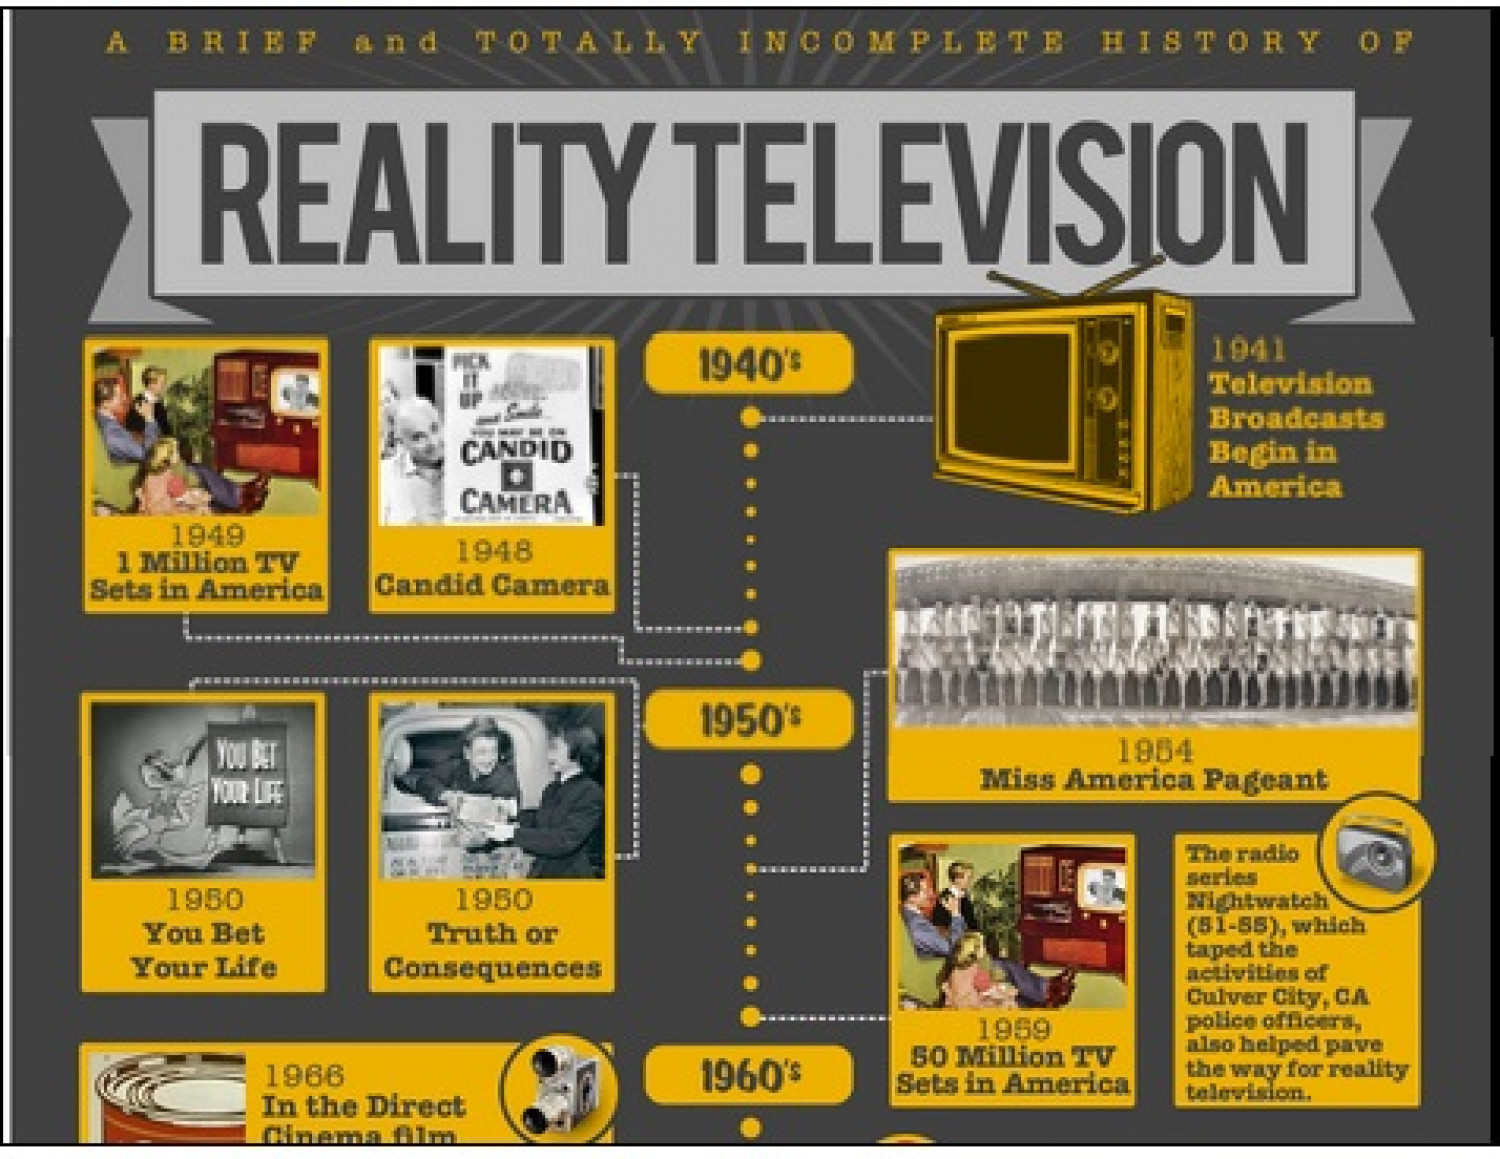 A Brief and Totally Incomplete History of Reality Television Infographic